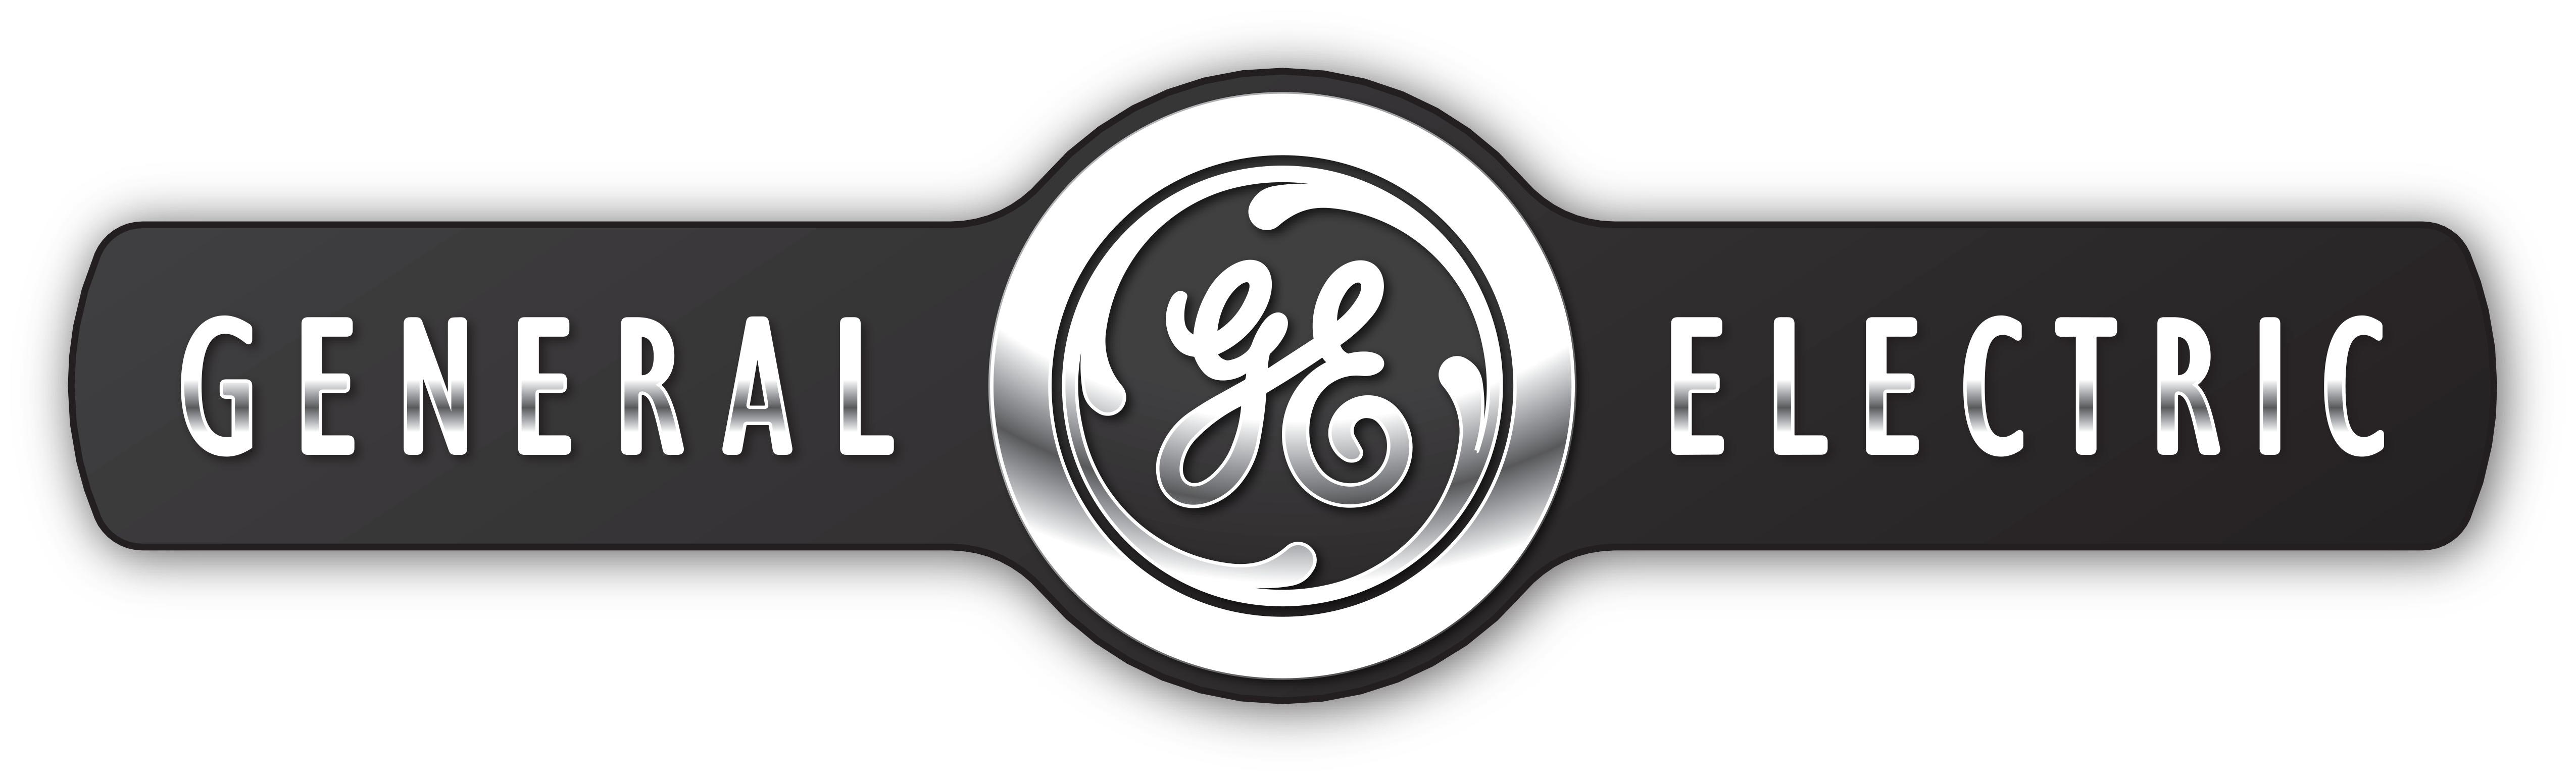 GE Unveils First Line of Appliances Designed by a Millennial for Millennials | GE Appliances ...